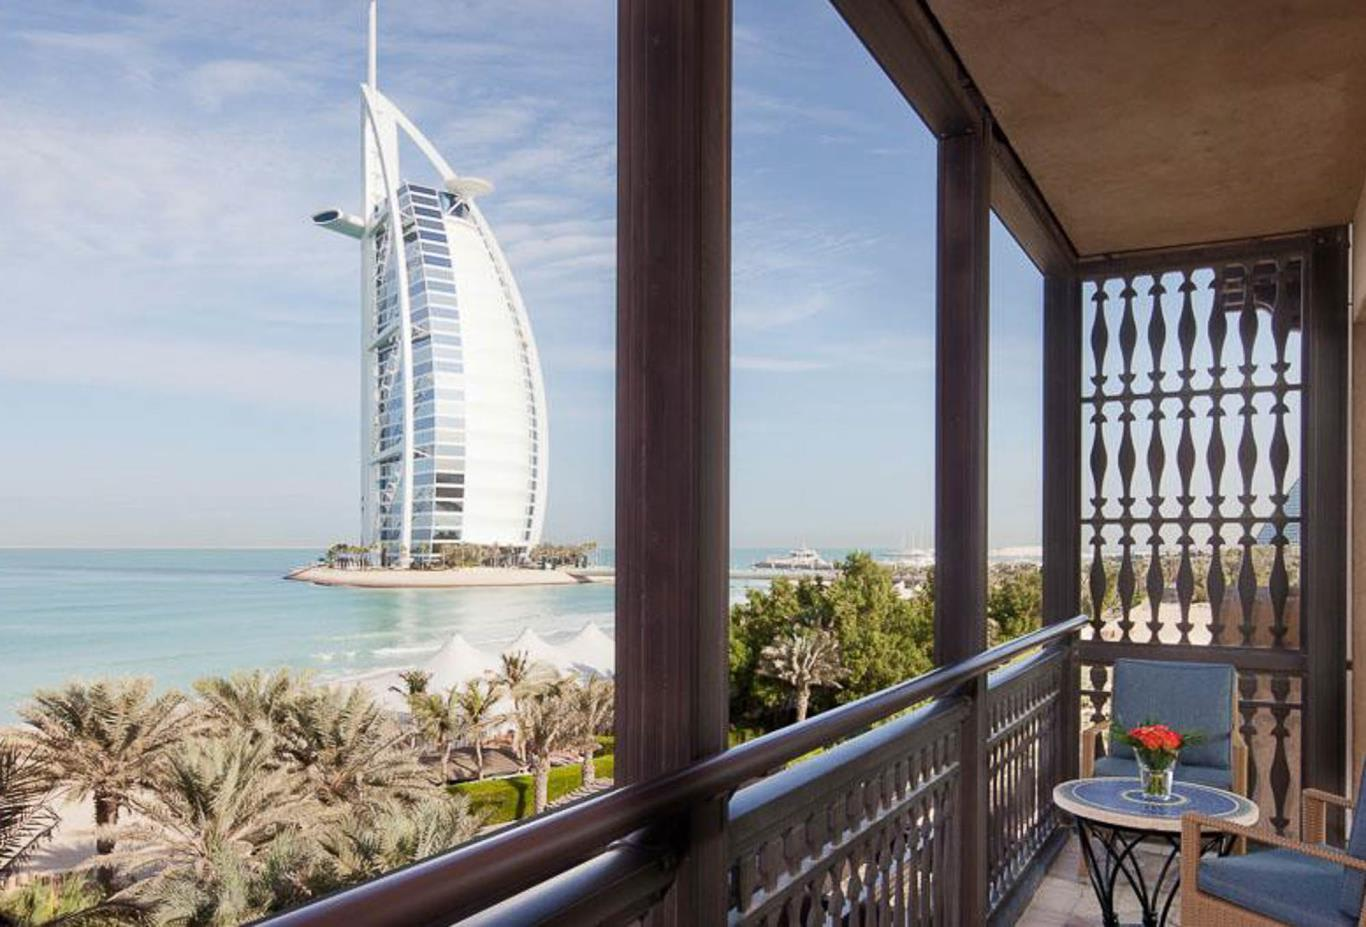 1 Bedroom Arabian Gulf Suite view